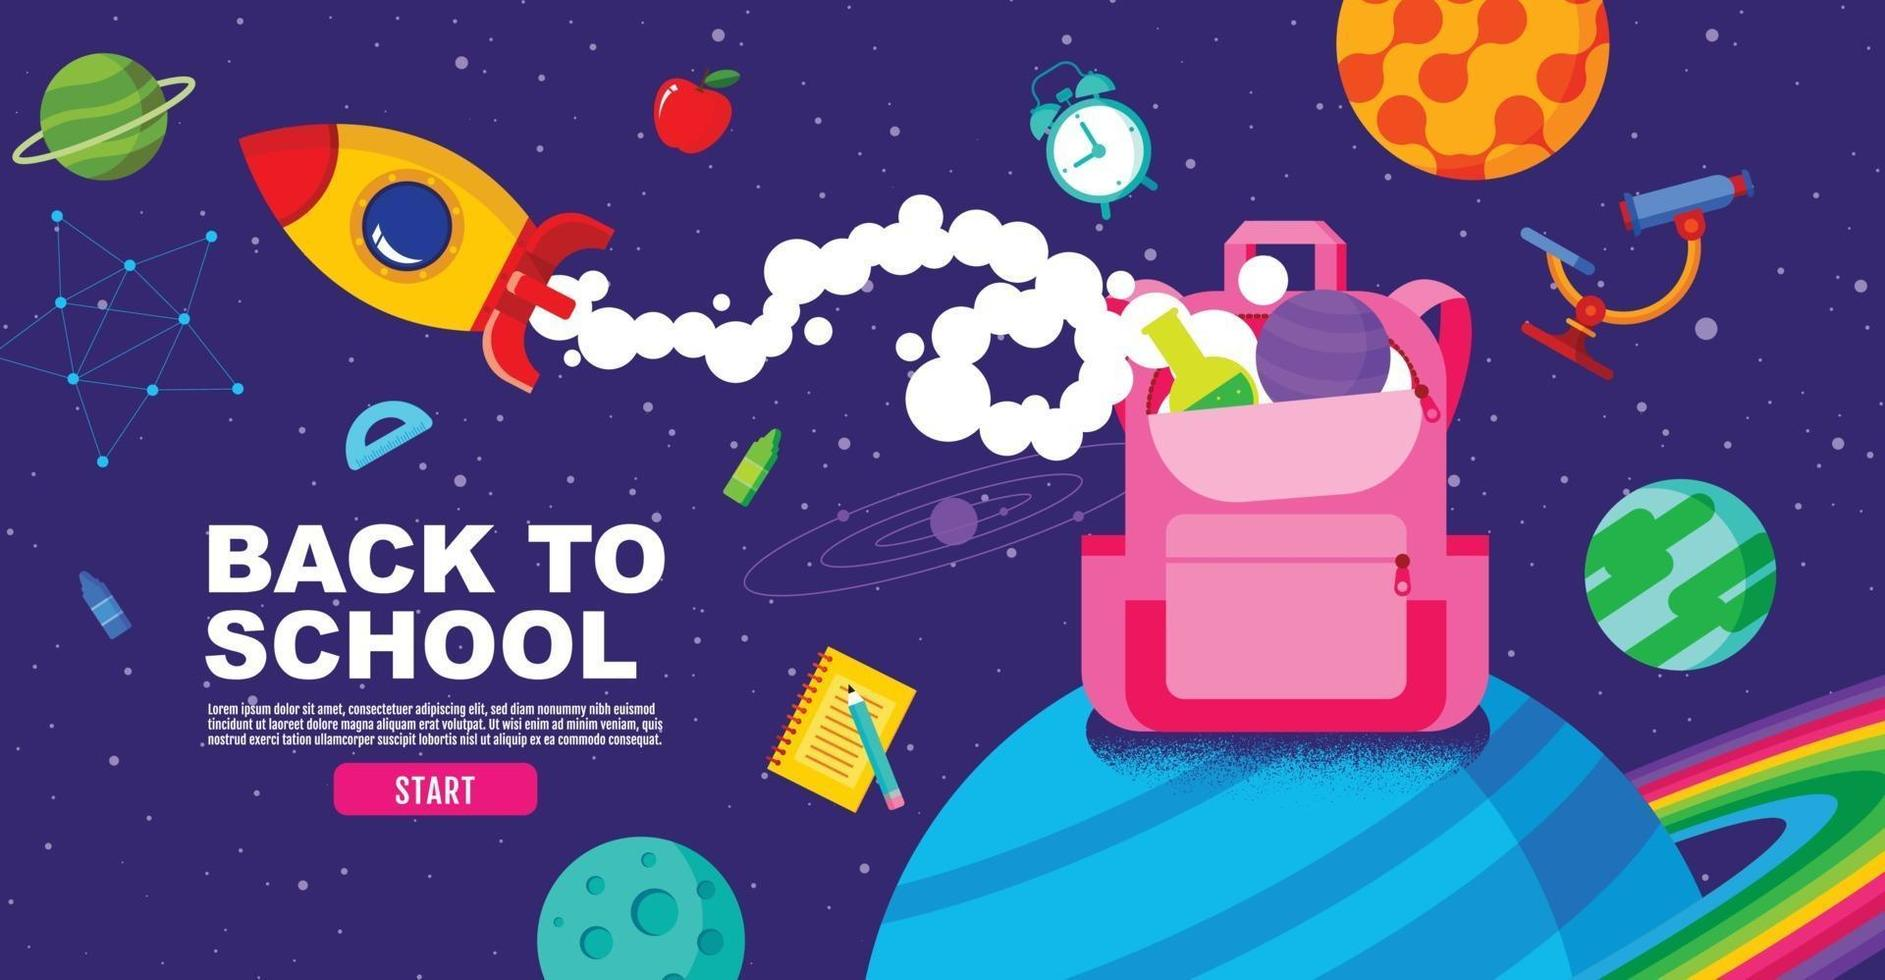 back to school, Online Learning, study from home, flat design vector. vector